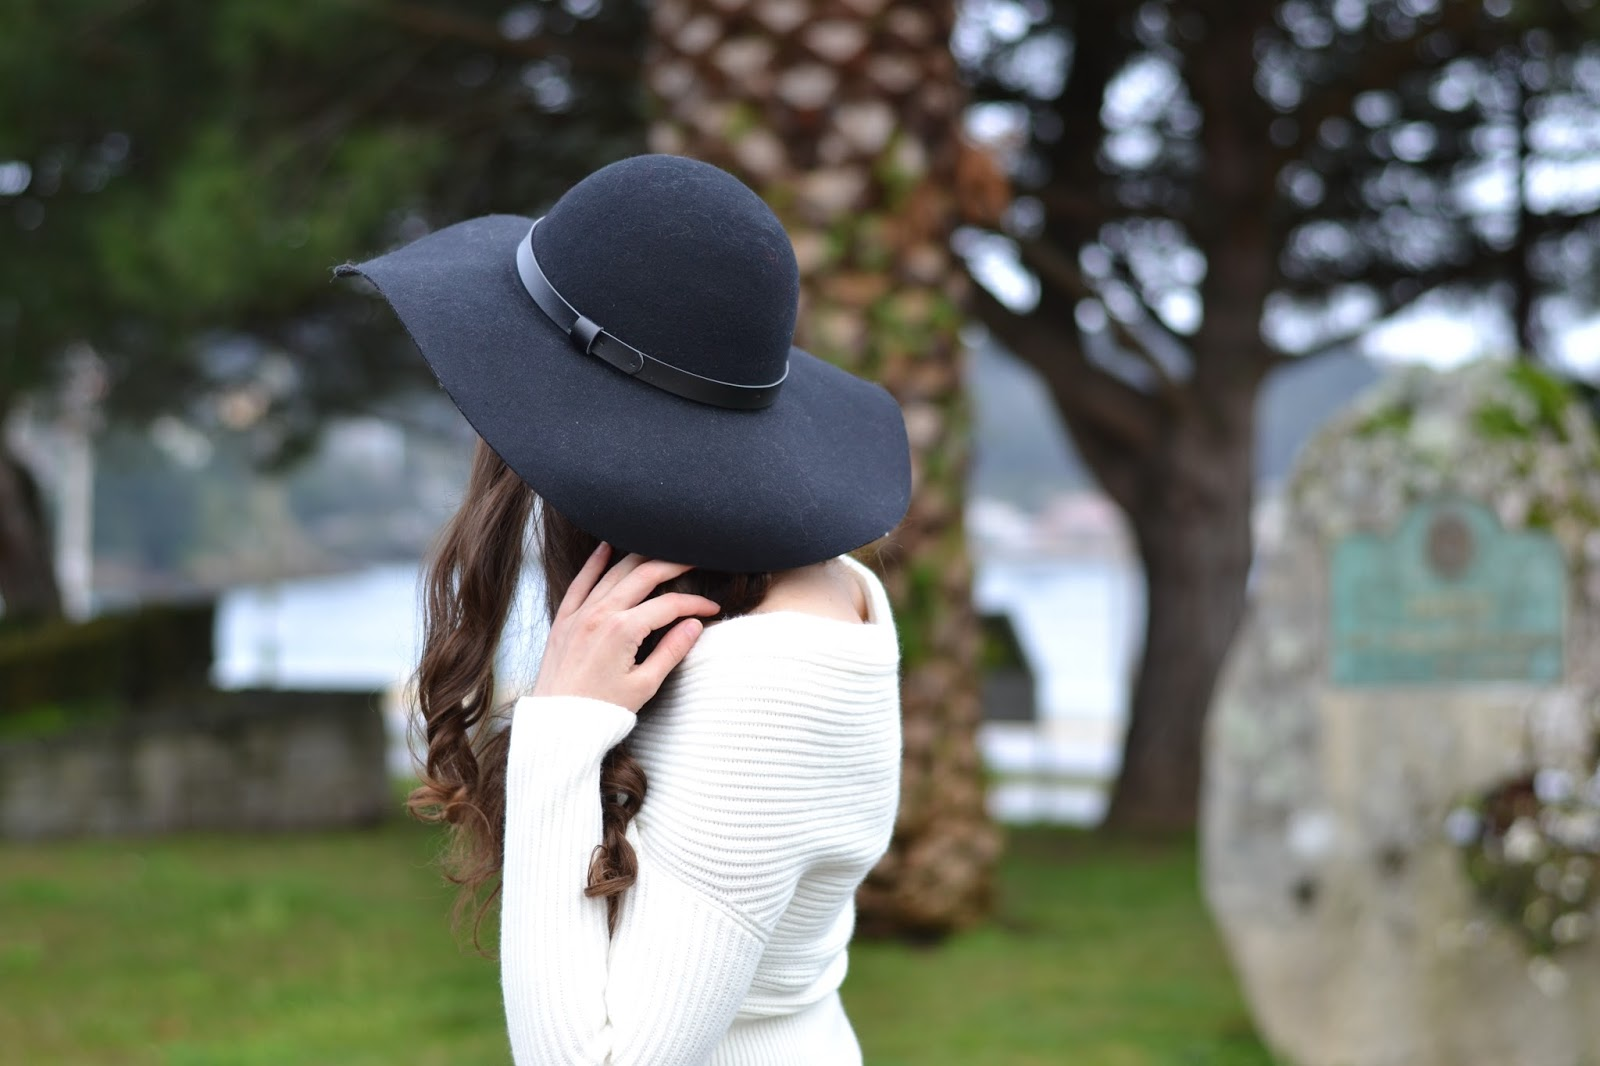 sheinside white sweater, perfect black hat, yudani